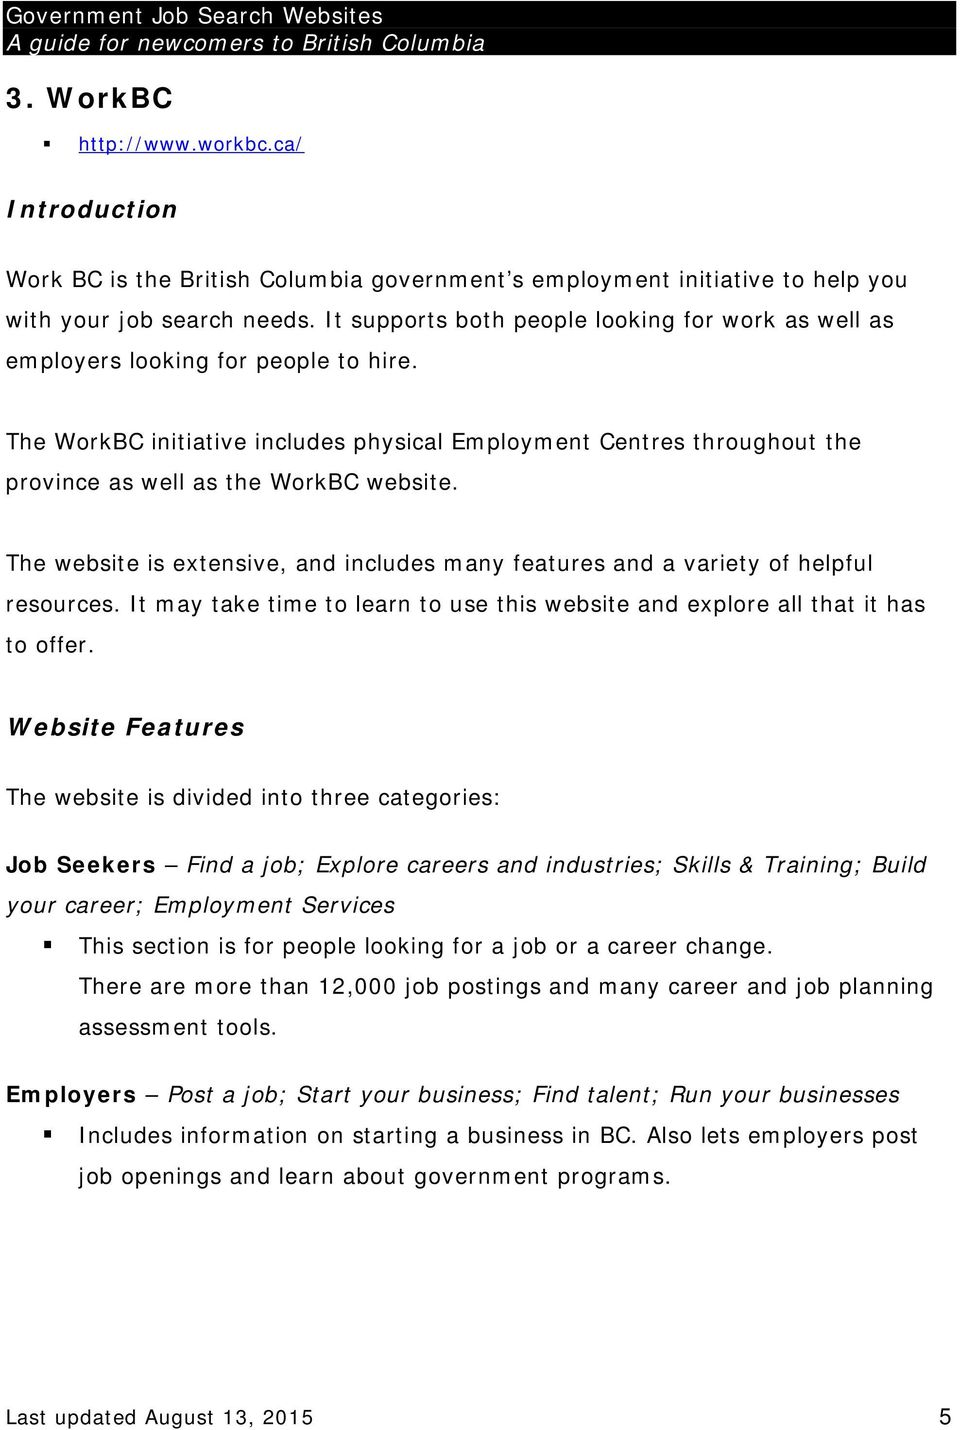 The WorkBC initiative includes physical Employment Centres throughout the province as well as the WorkBC website.